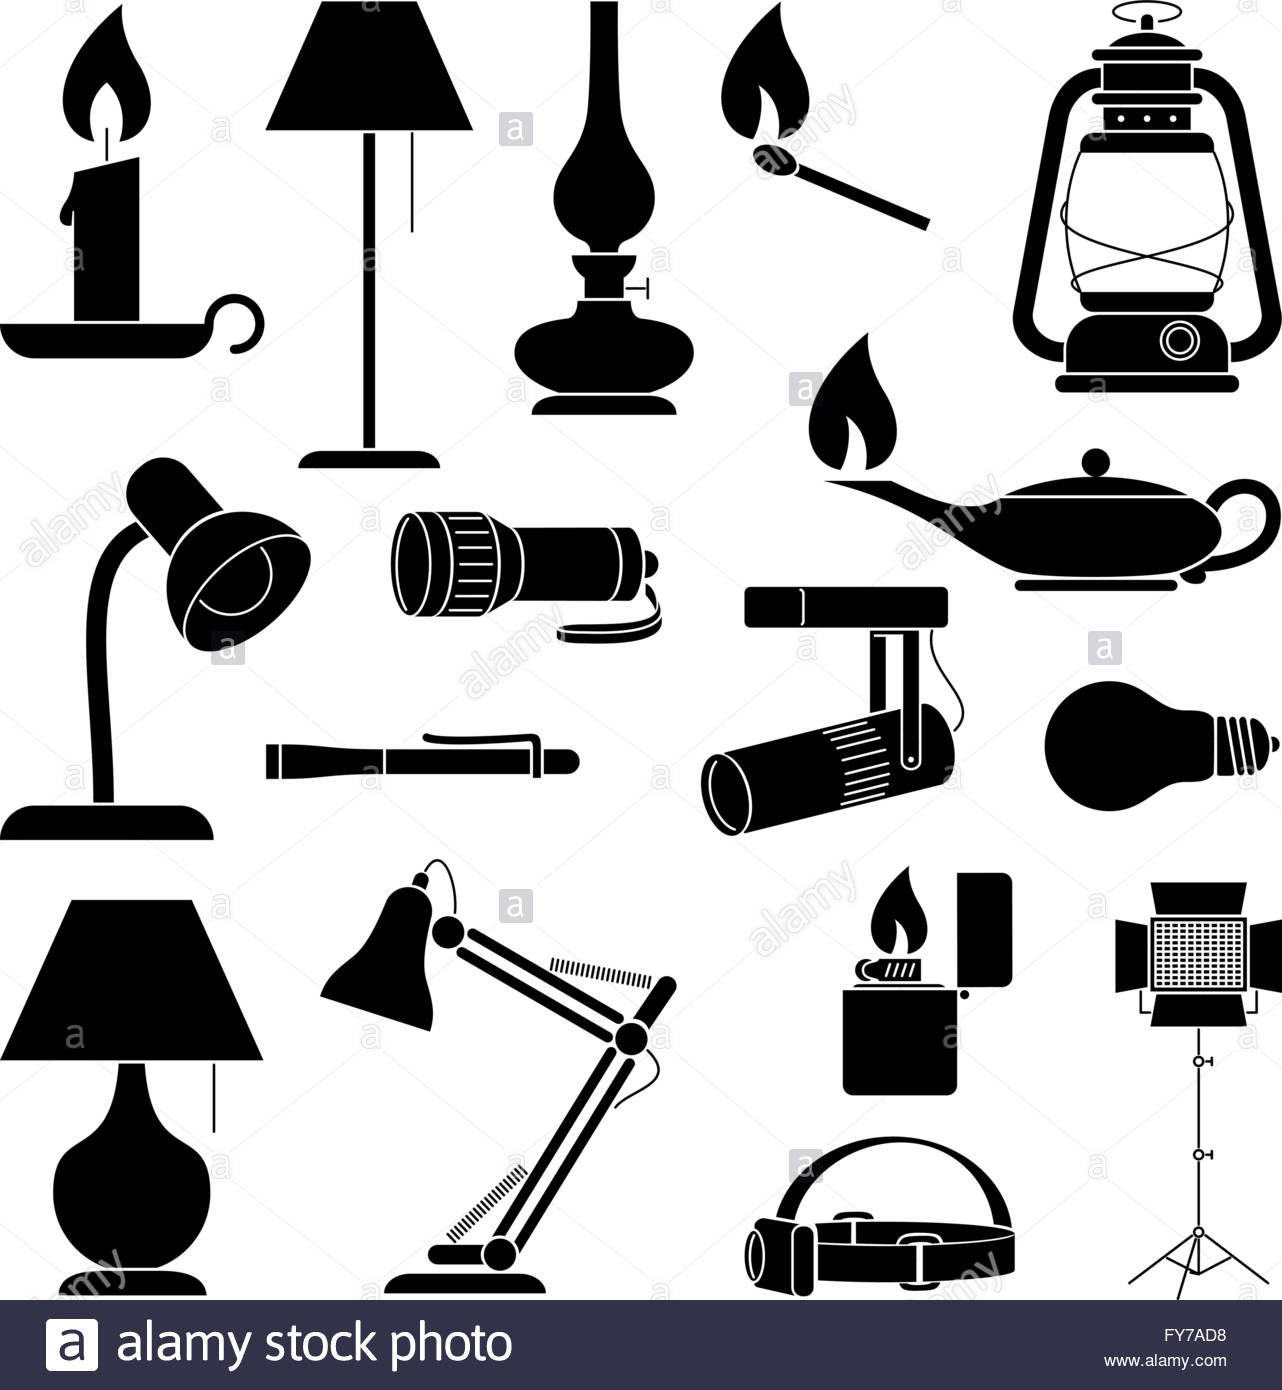 Lamp Silhouettes. Set of Lamp Silhouettes - Stock Vector